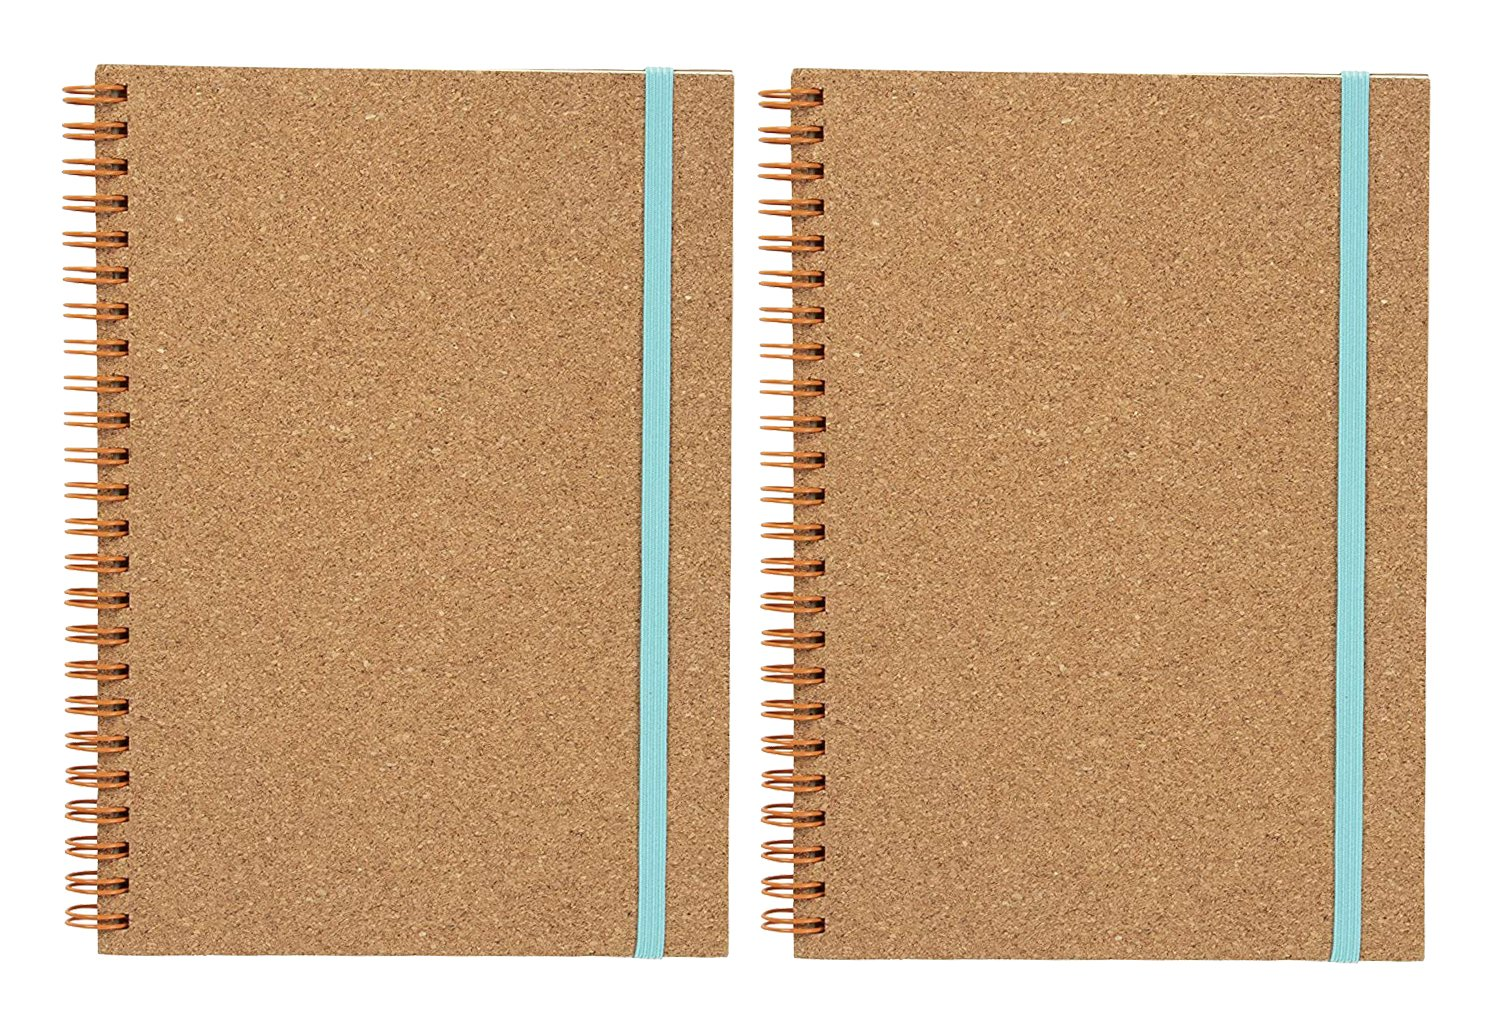 Spiral Notebooks Cork Cover- 2-Pack Eco-Friendly Lined Hard Cover Notebooks Elastic Strap Closure, Travel Journal, Diary, Notepad Office, School, Student, 60 Sheets, 6.25 x 8.3 inches